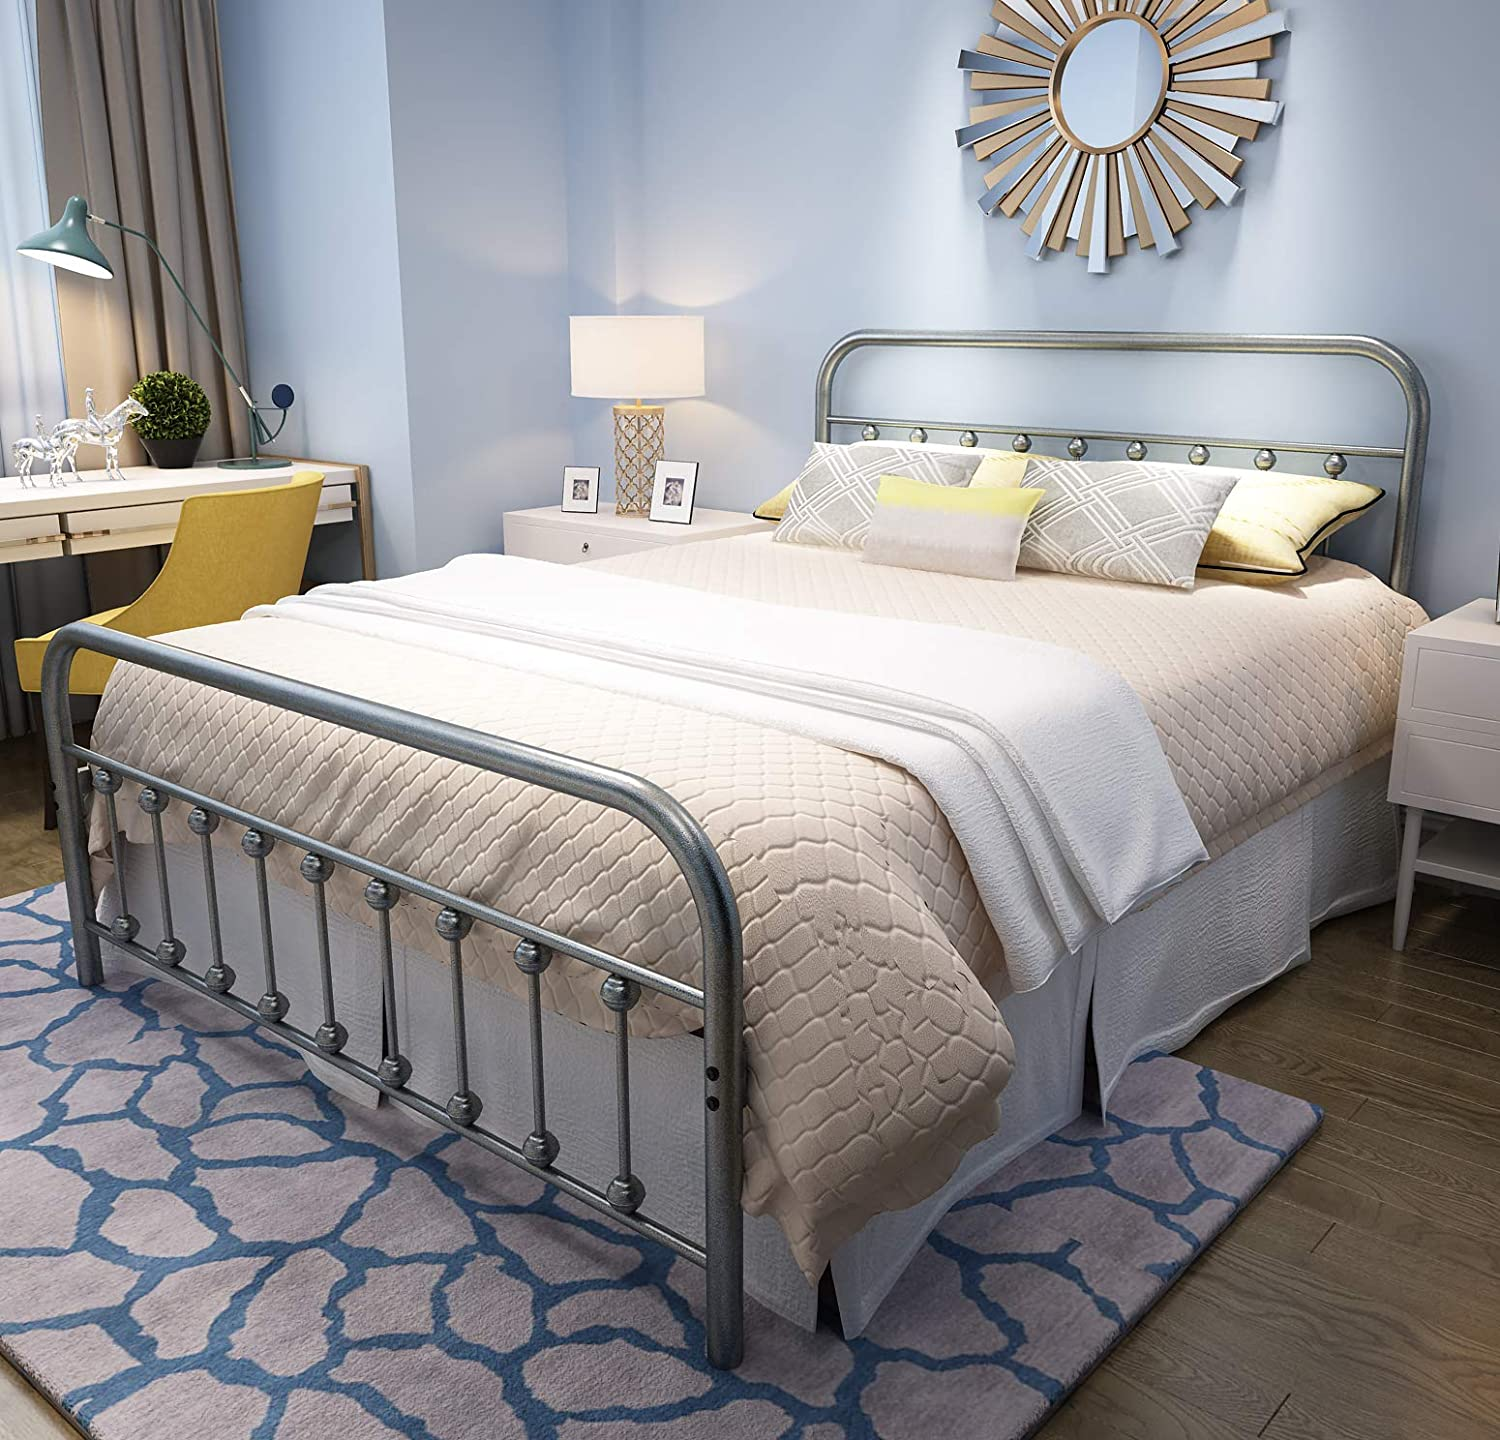 YALAXON Vintage Sturdy Queen Size Metal Bed Frame with Headboard and Footboard Basic Bed Frame No Box Spring Needed, Gray Silver Queen, Gray Silver